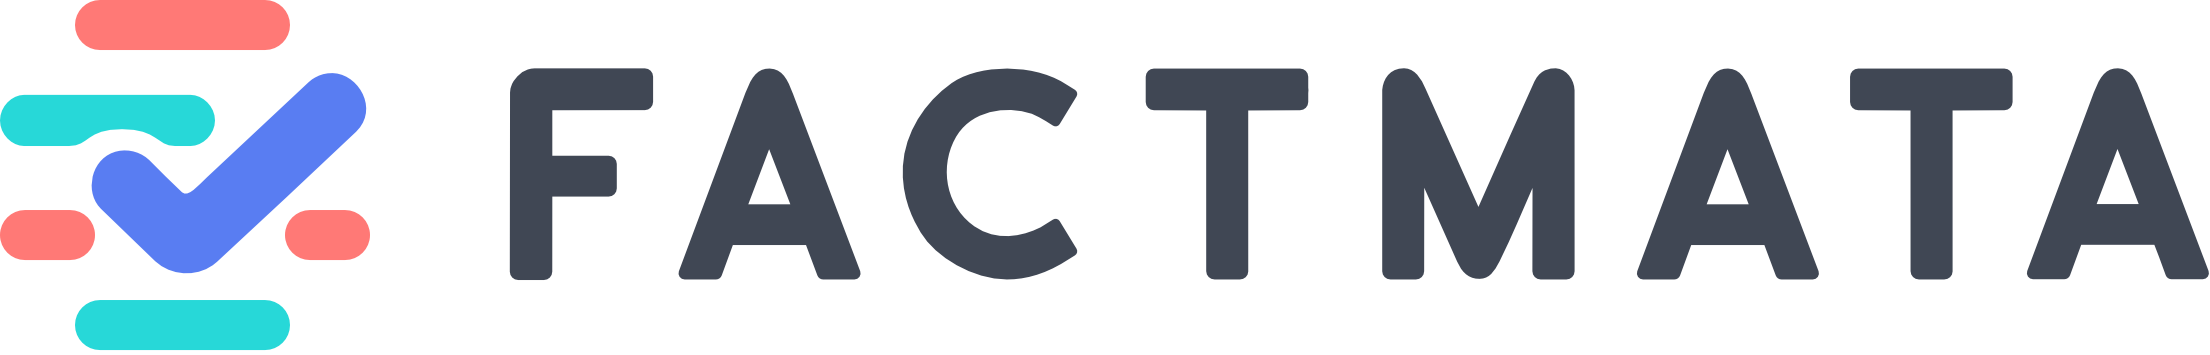 Factmata logo